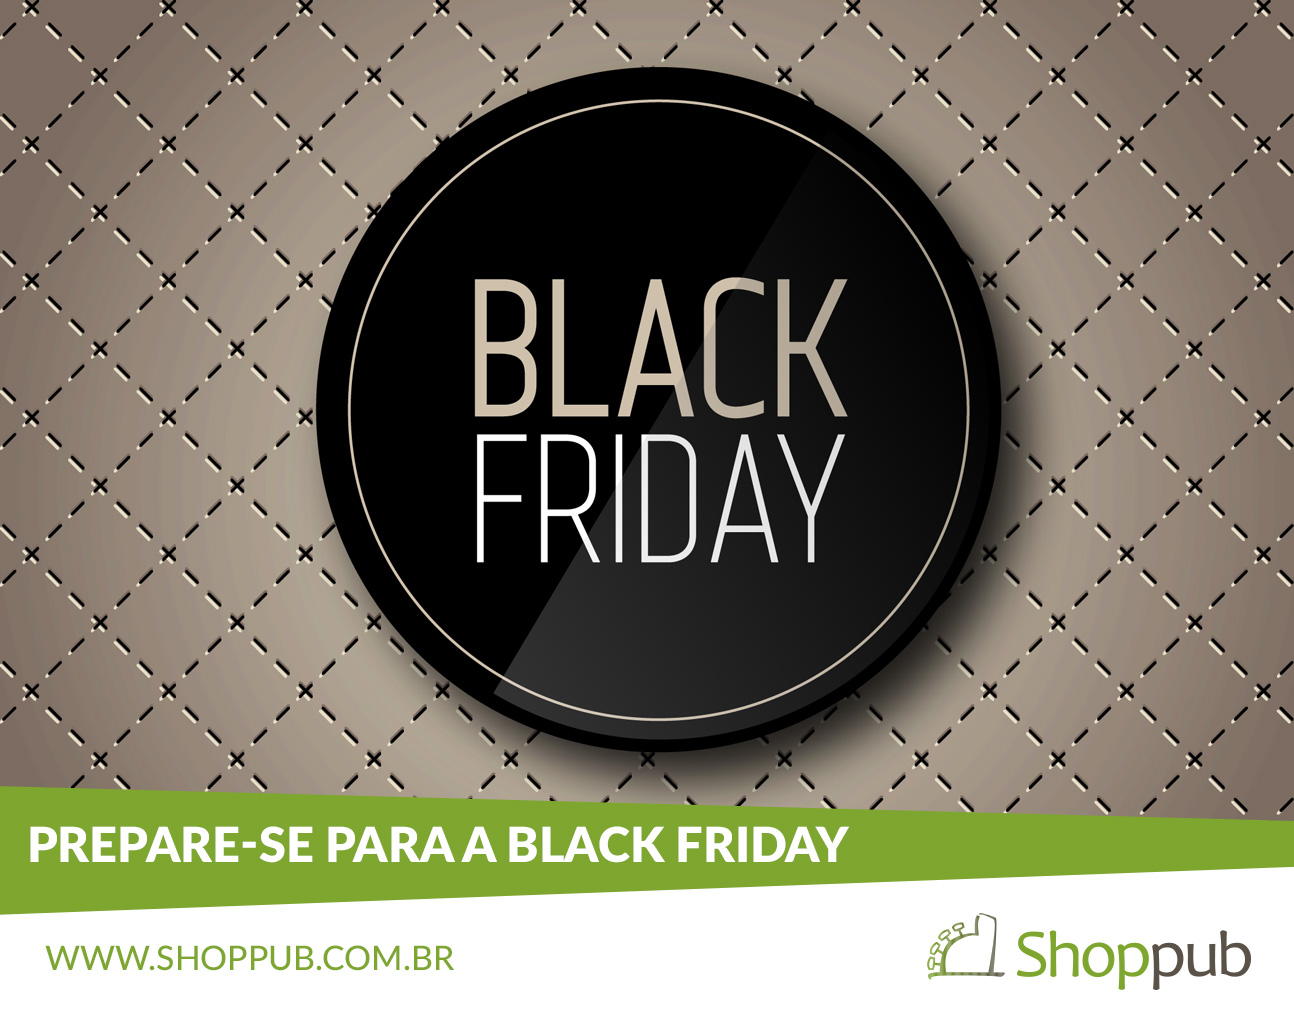 Prepare-se para a Black Friday